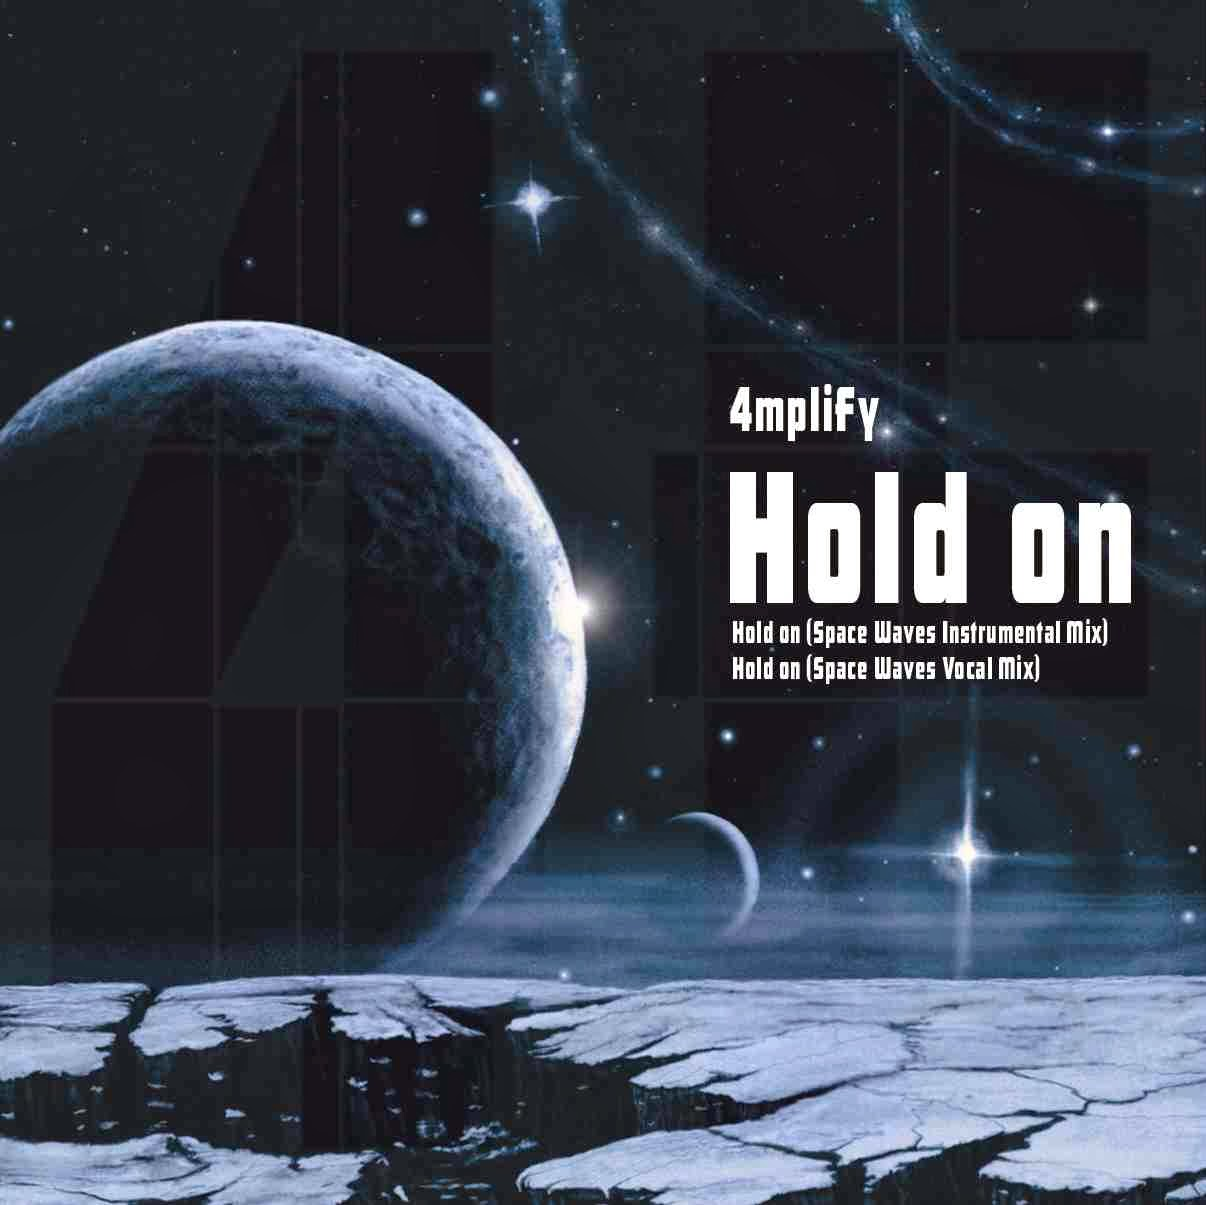 4mpliFy - Hold On